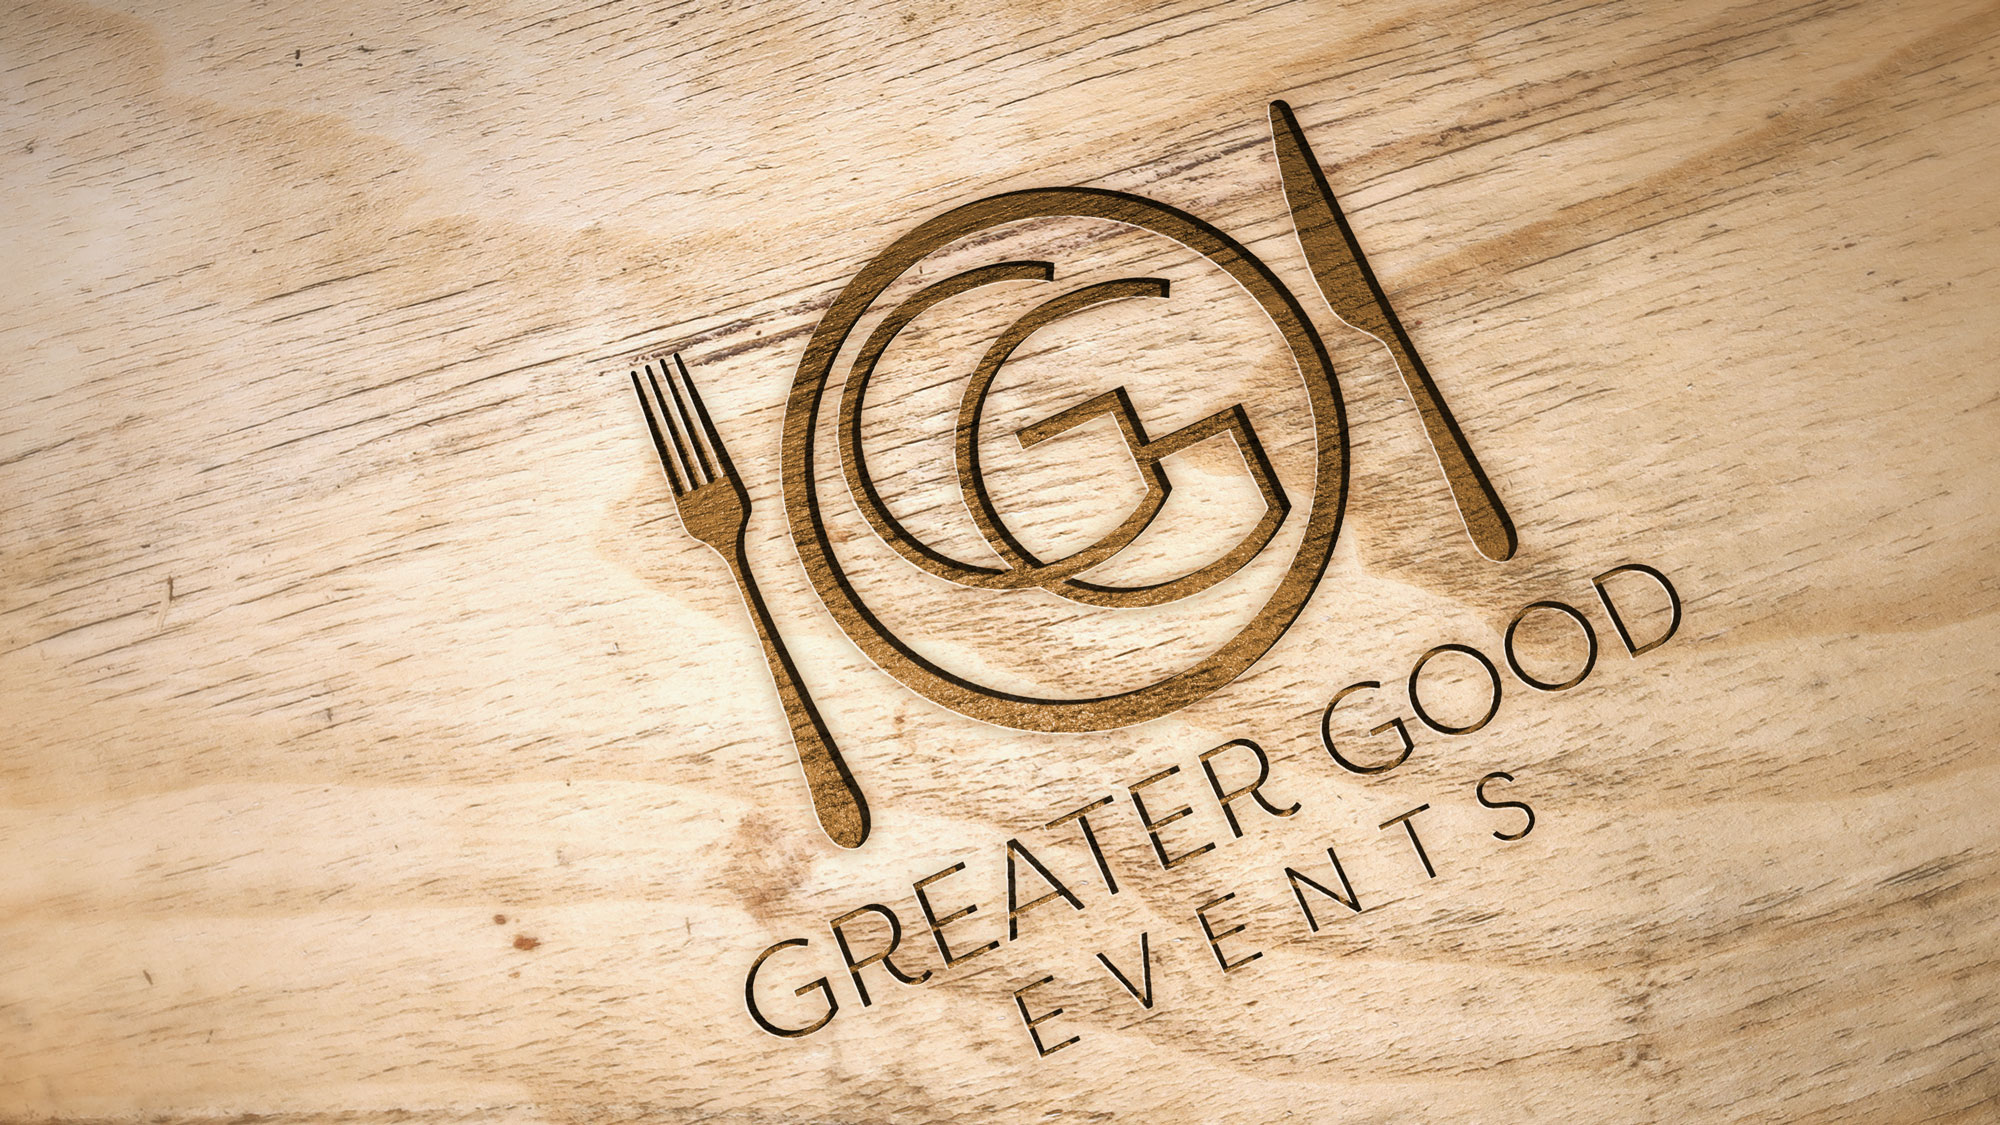 Greater Good Events logo engraved in wood.